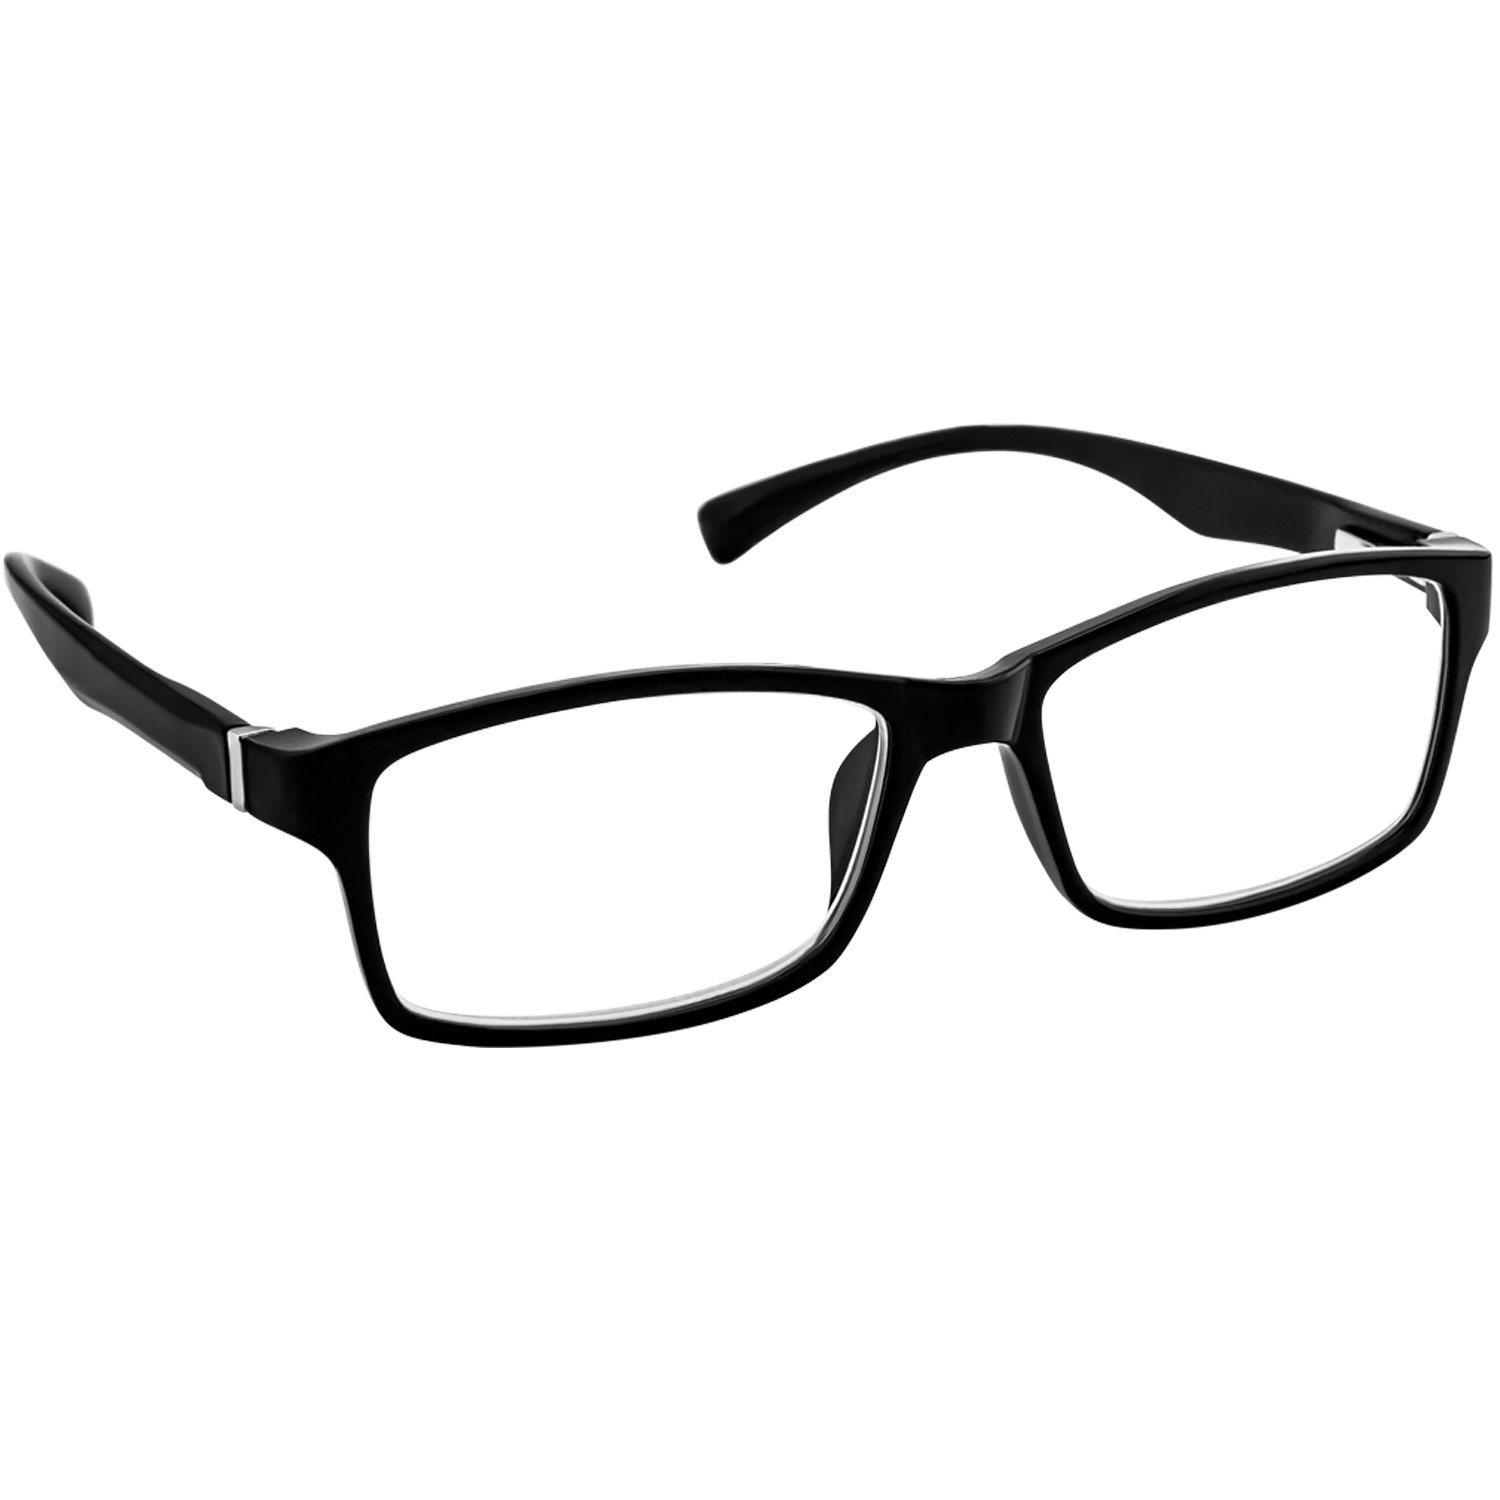 a880cac9f58 Amazon.com  Black Computer Reading Glasses 2.50 Protect Your Eyes Against  Eye Strain